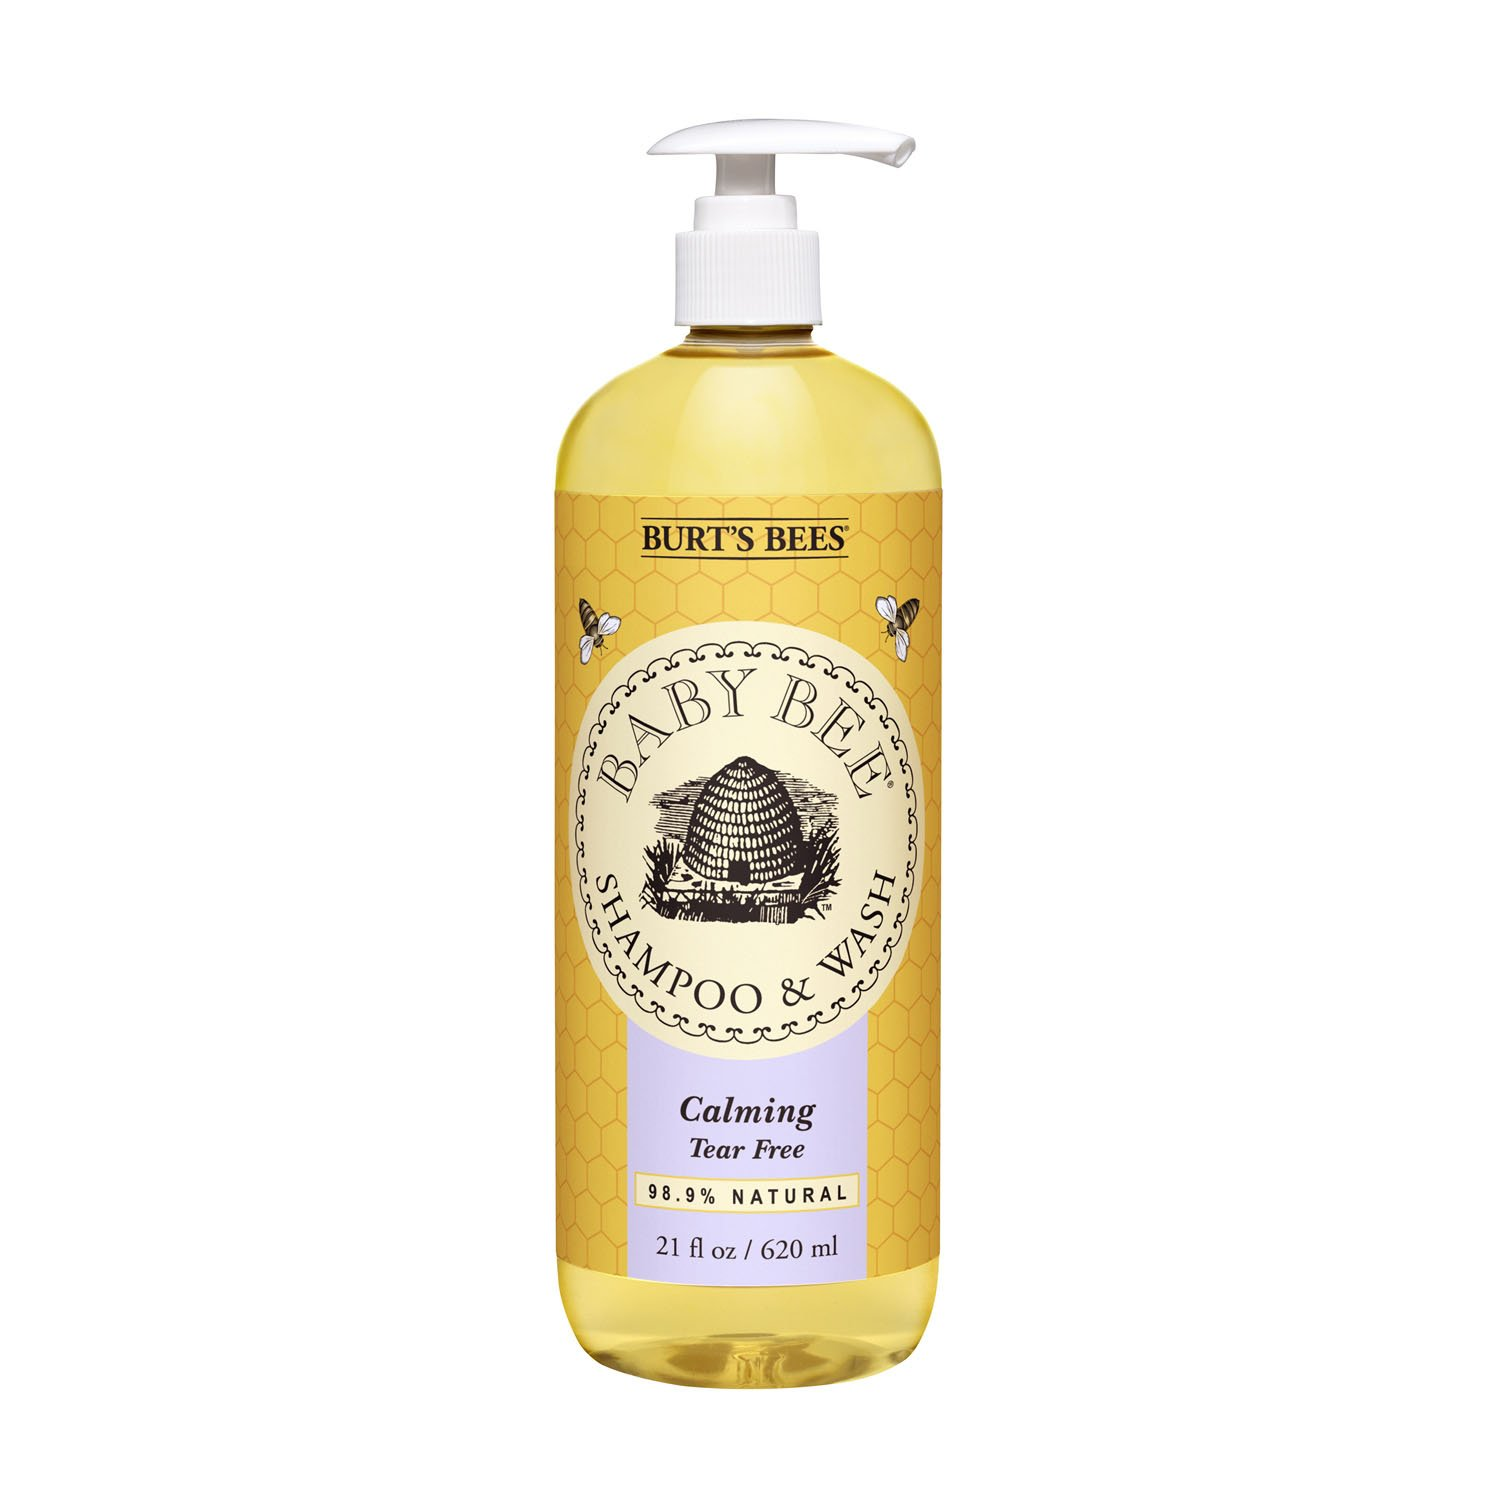 Burt's Bees Baby Bee Shampoo and Wash, Calming, 21 Fluid Ounces by Burt's Bees Baby